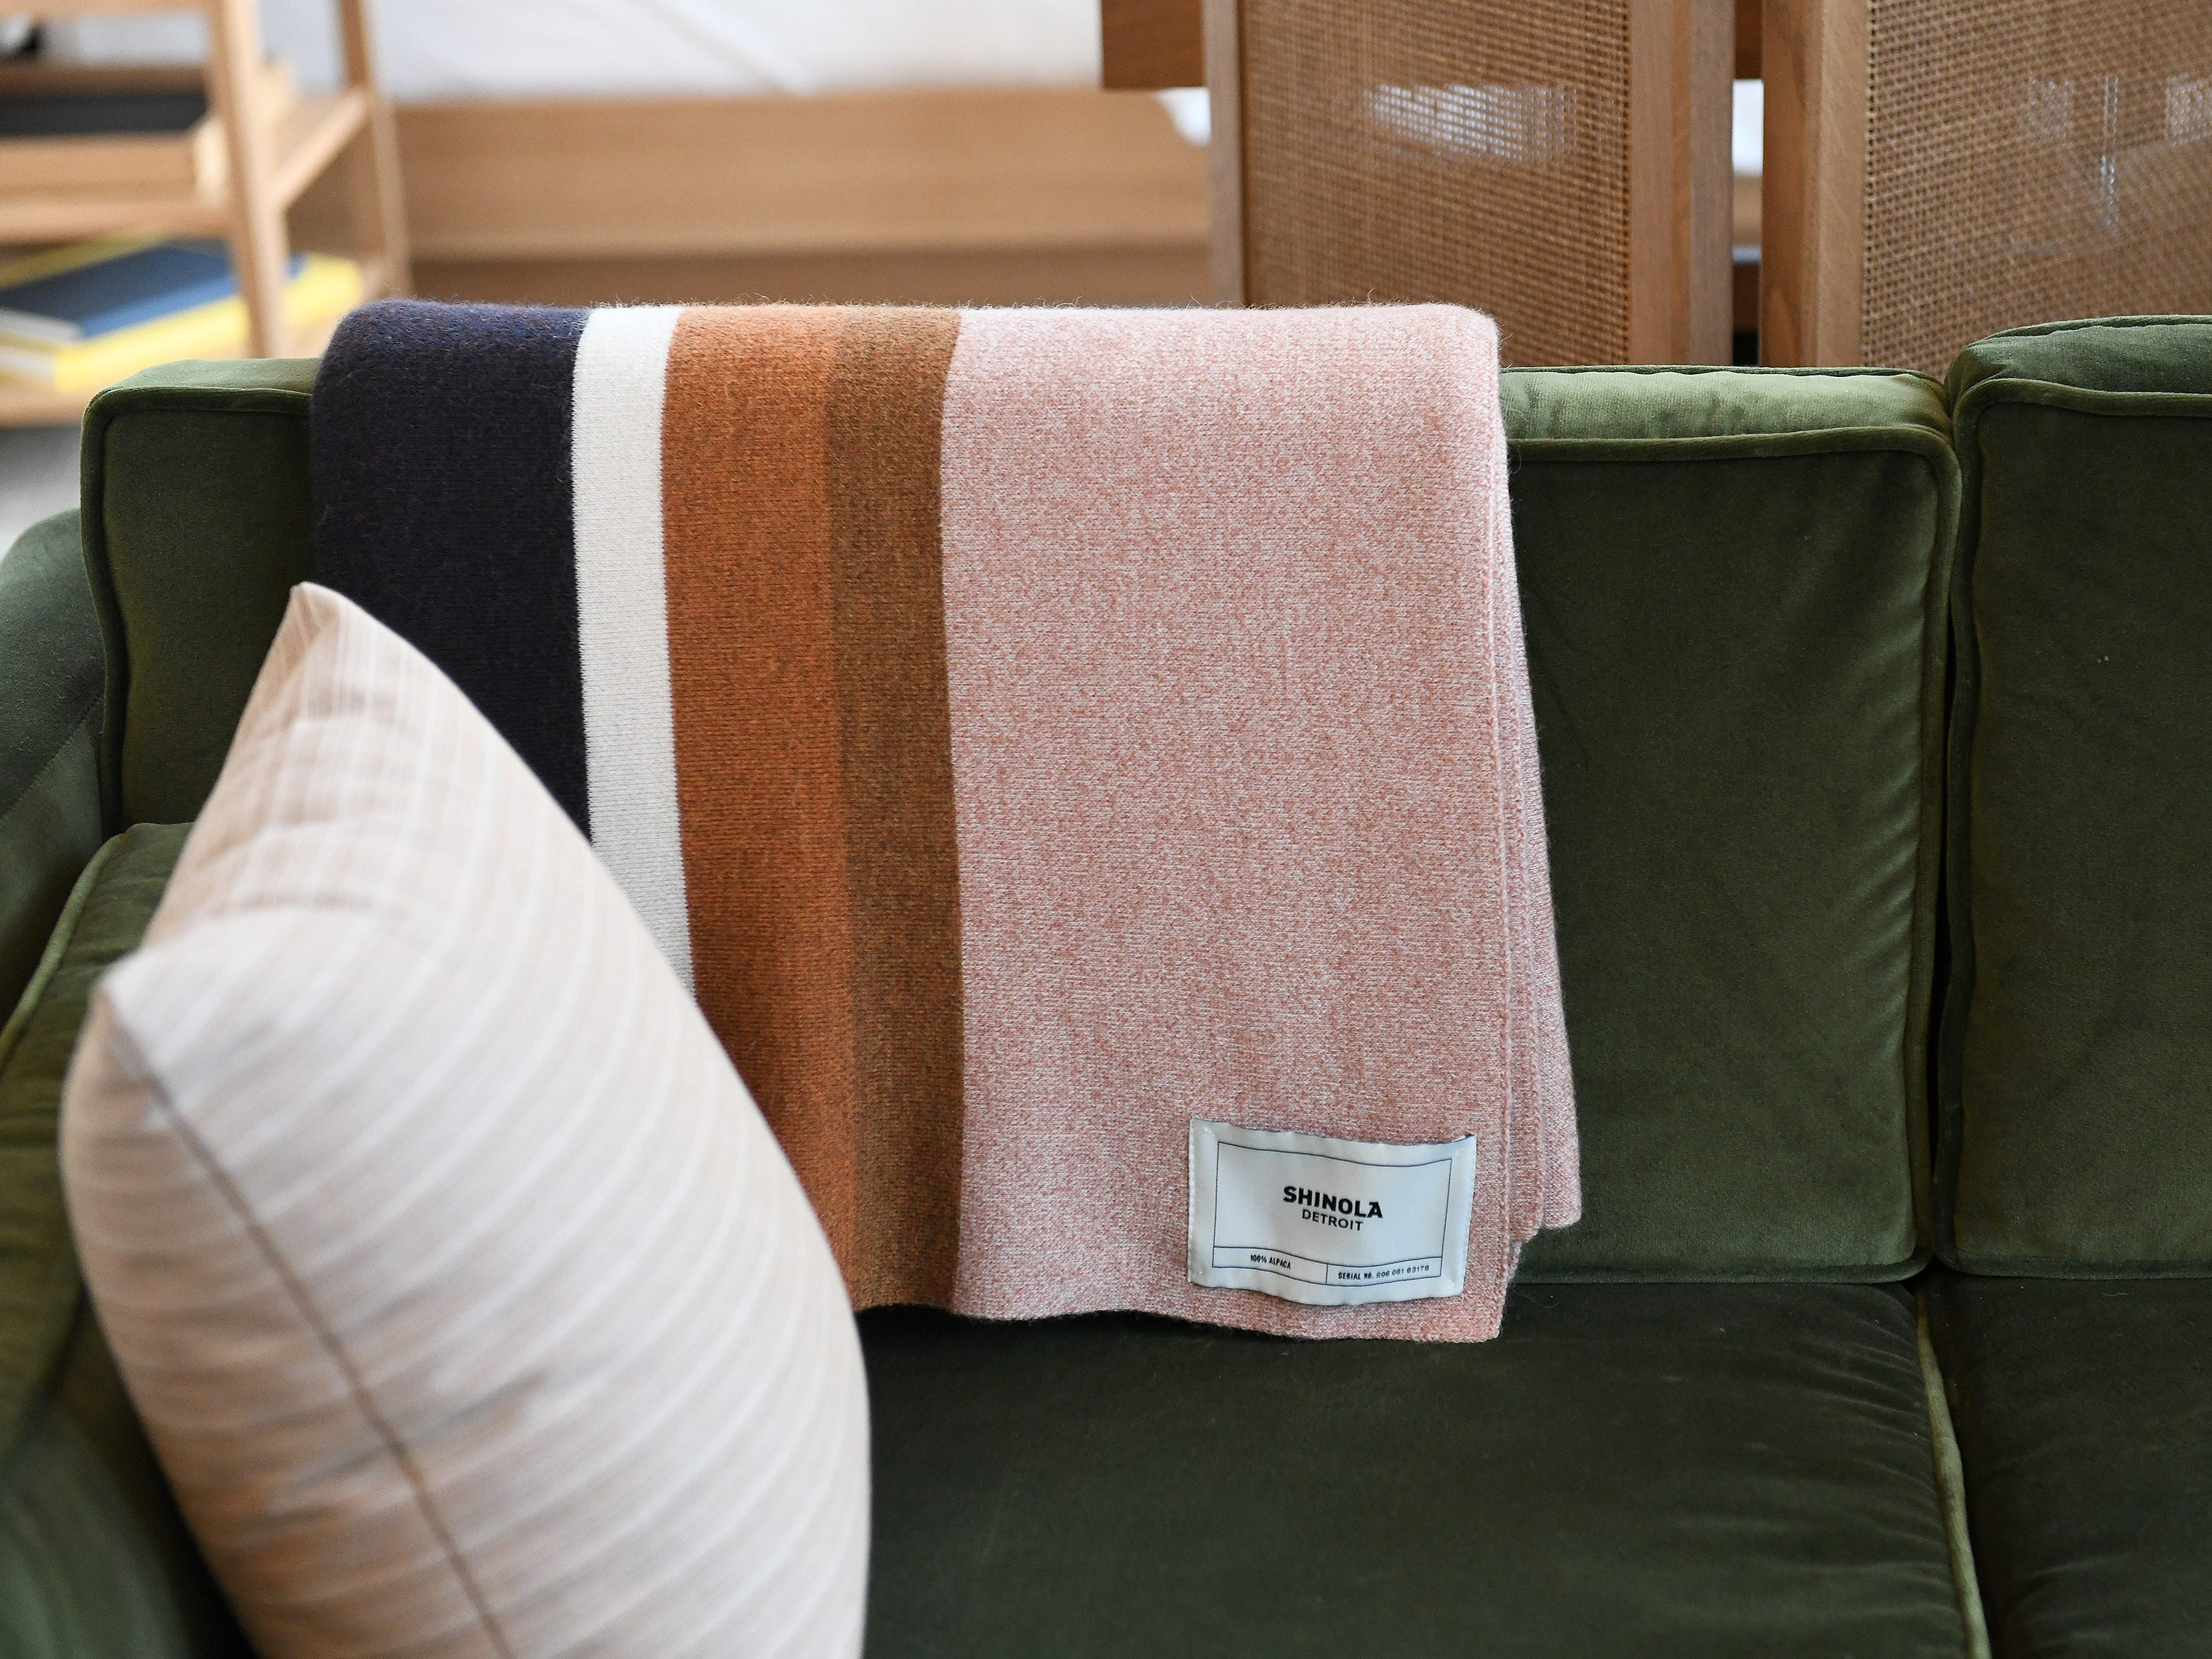 The rooms feature lots of items from Shinola, like this cozy blanket.